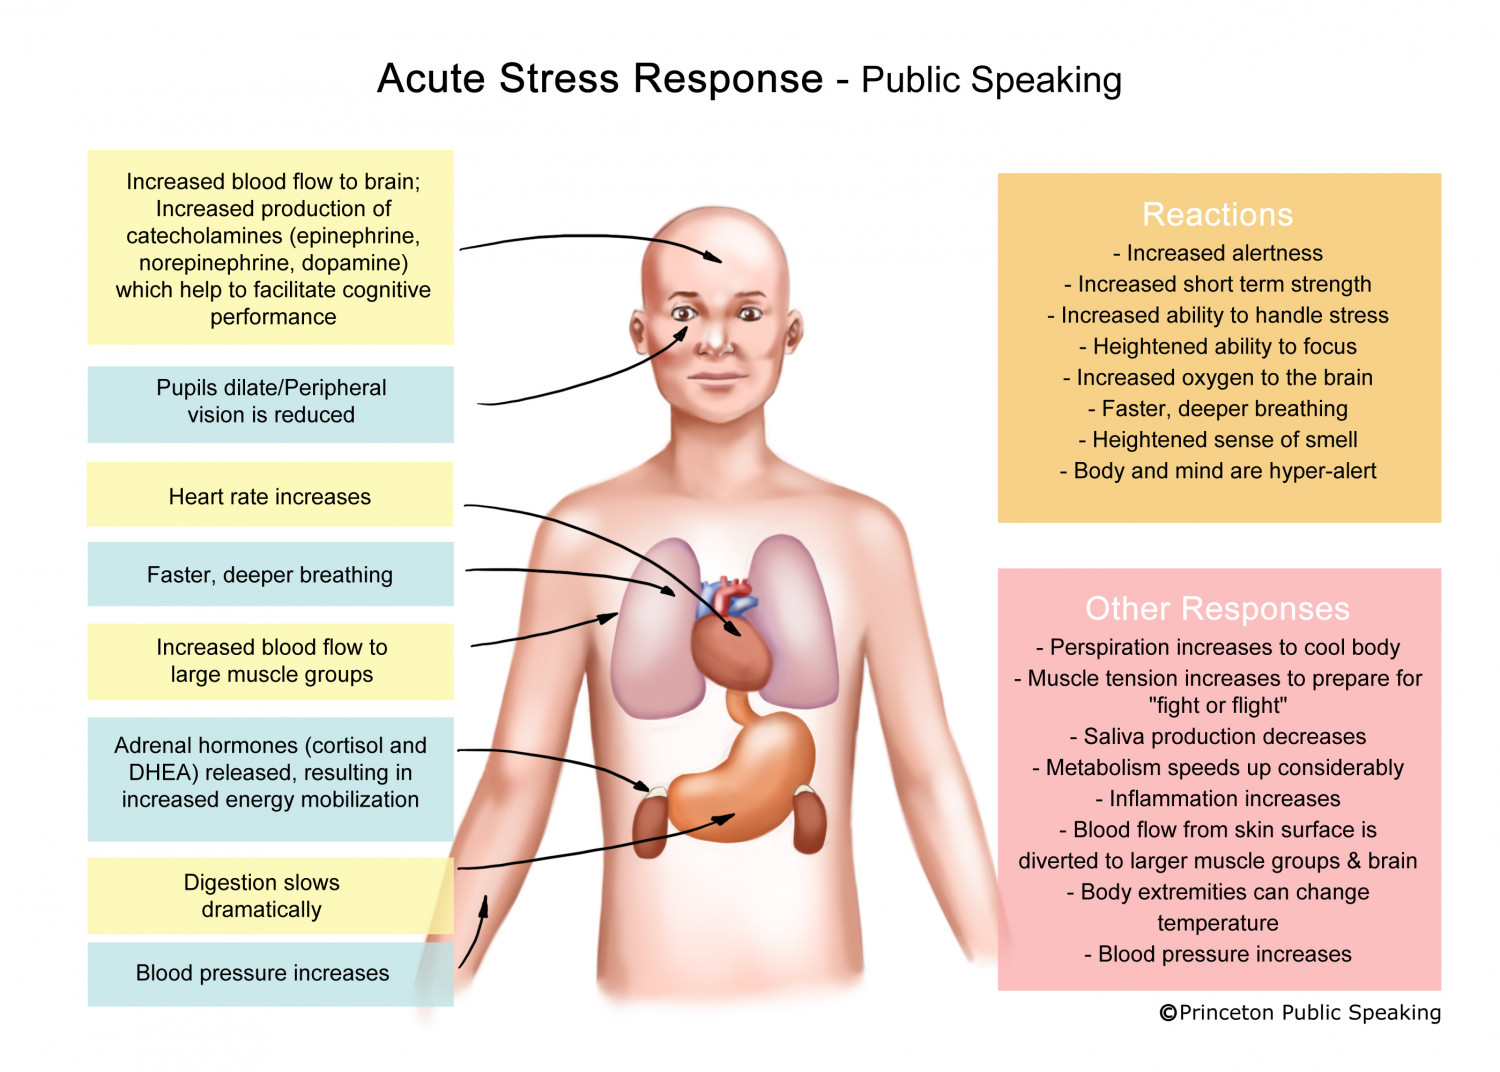 Acute Stress Response - Public Speaking | Visual.ly